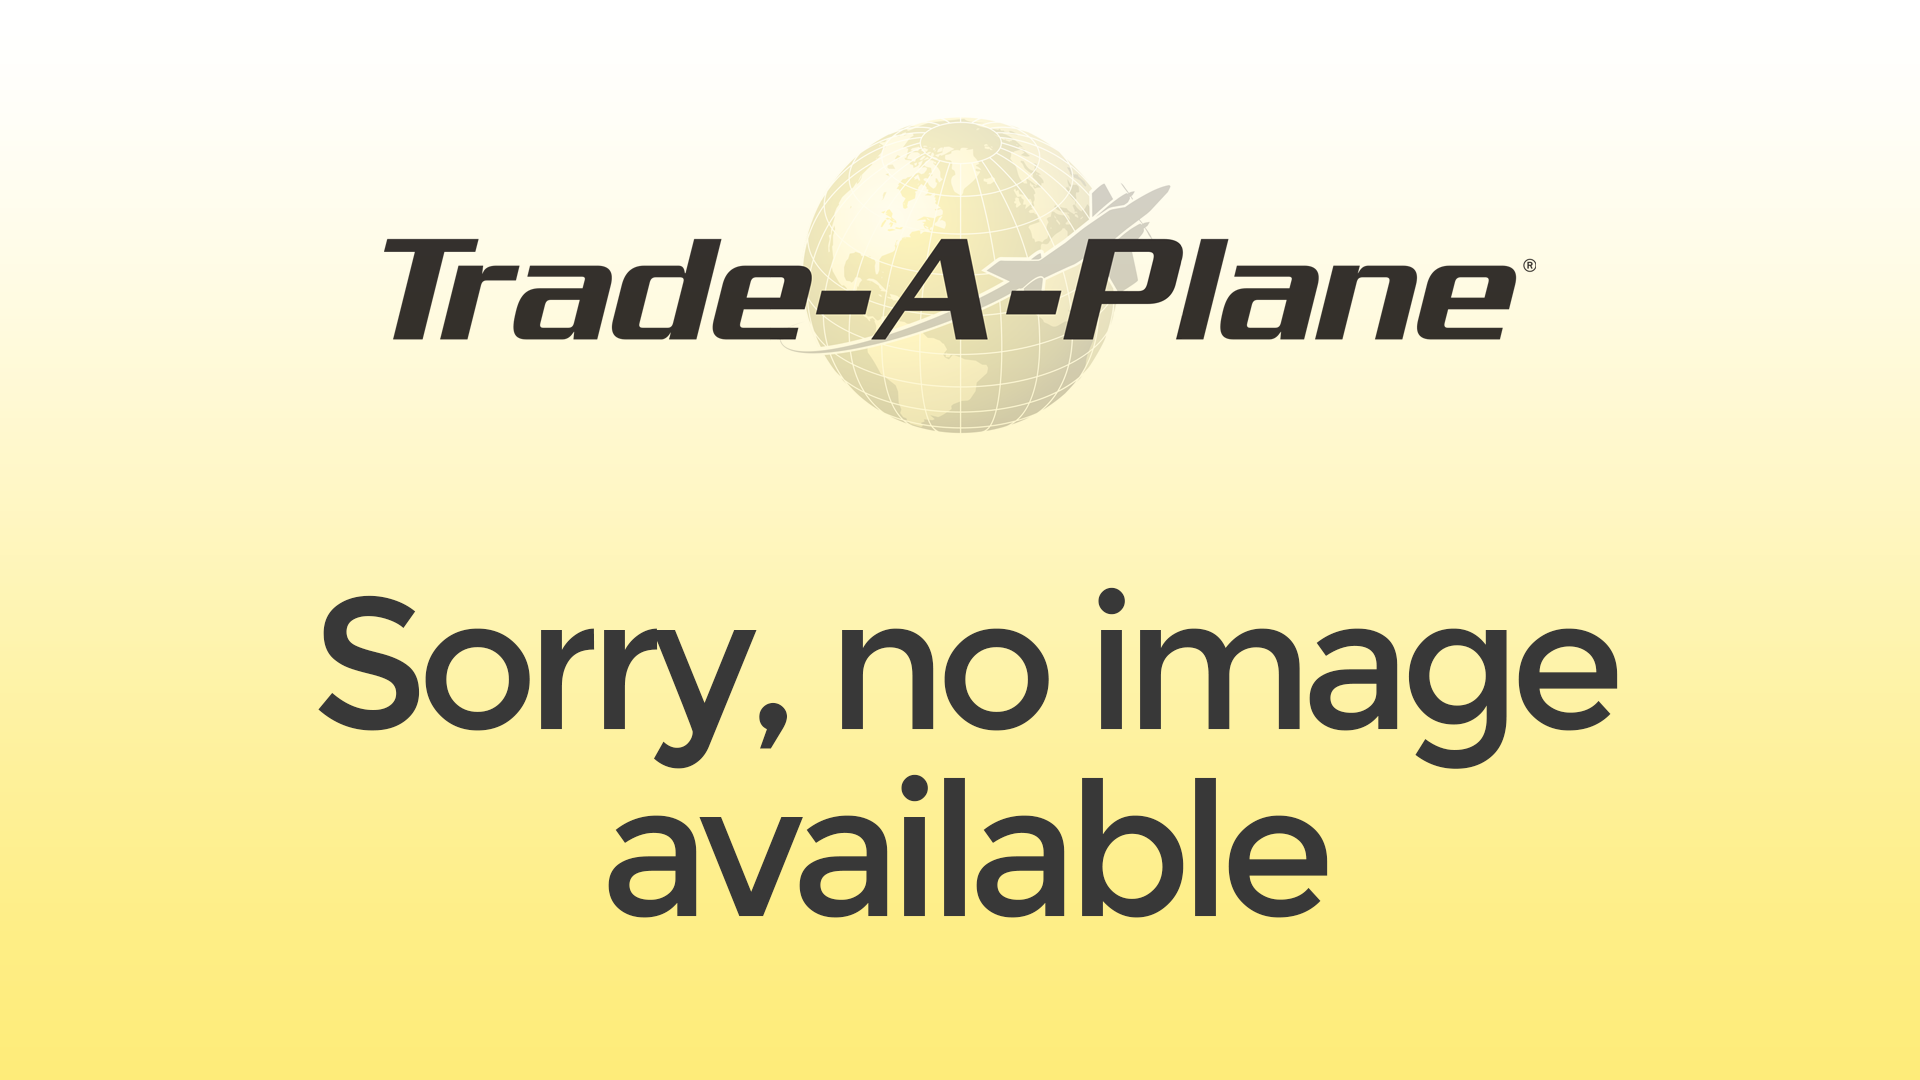 http://www.trade-a-plane.com/display-asset?id=199815